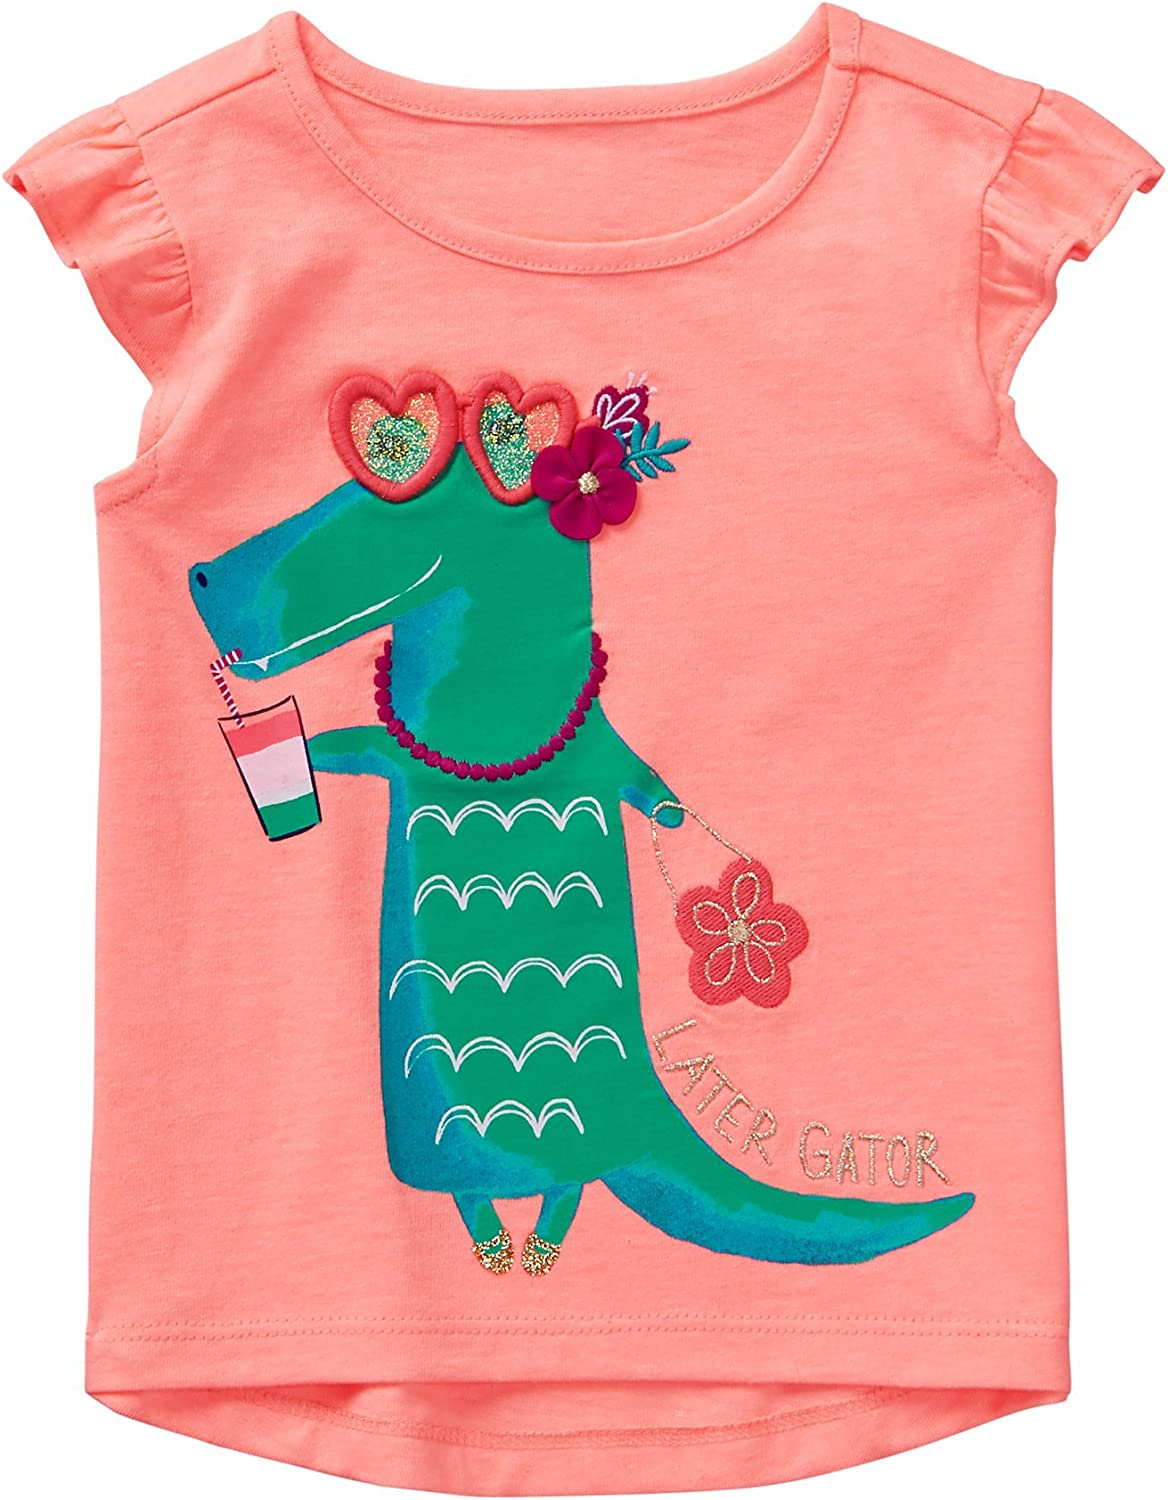 Gymboree Baby Girl Flamingo /& Crocodile Trip Tee Shirt